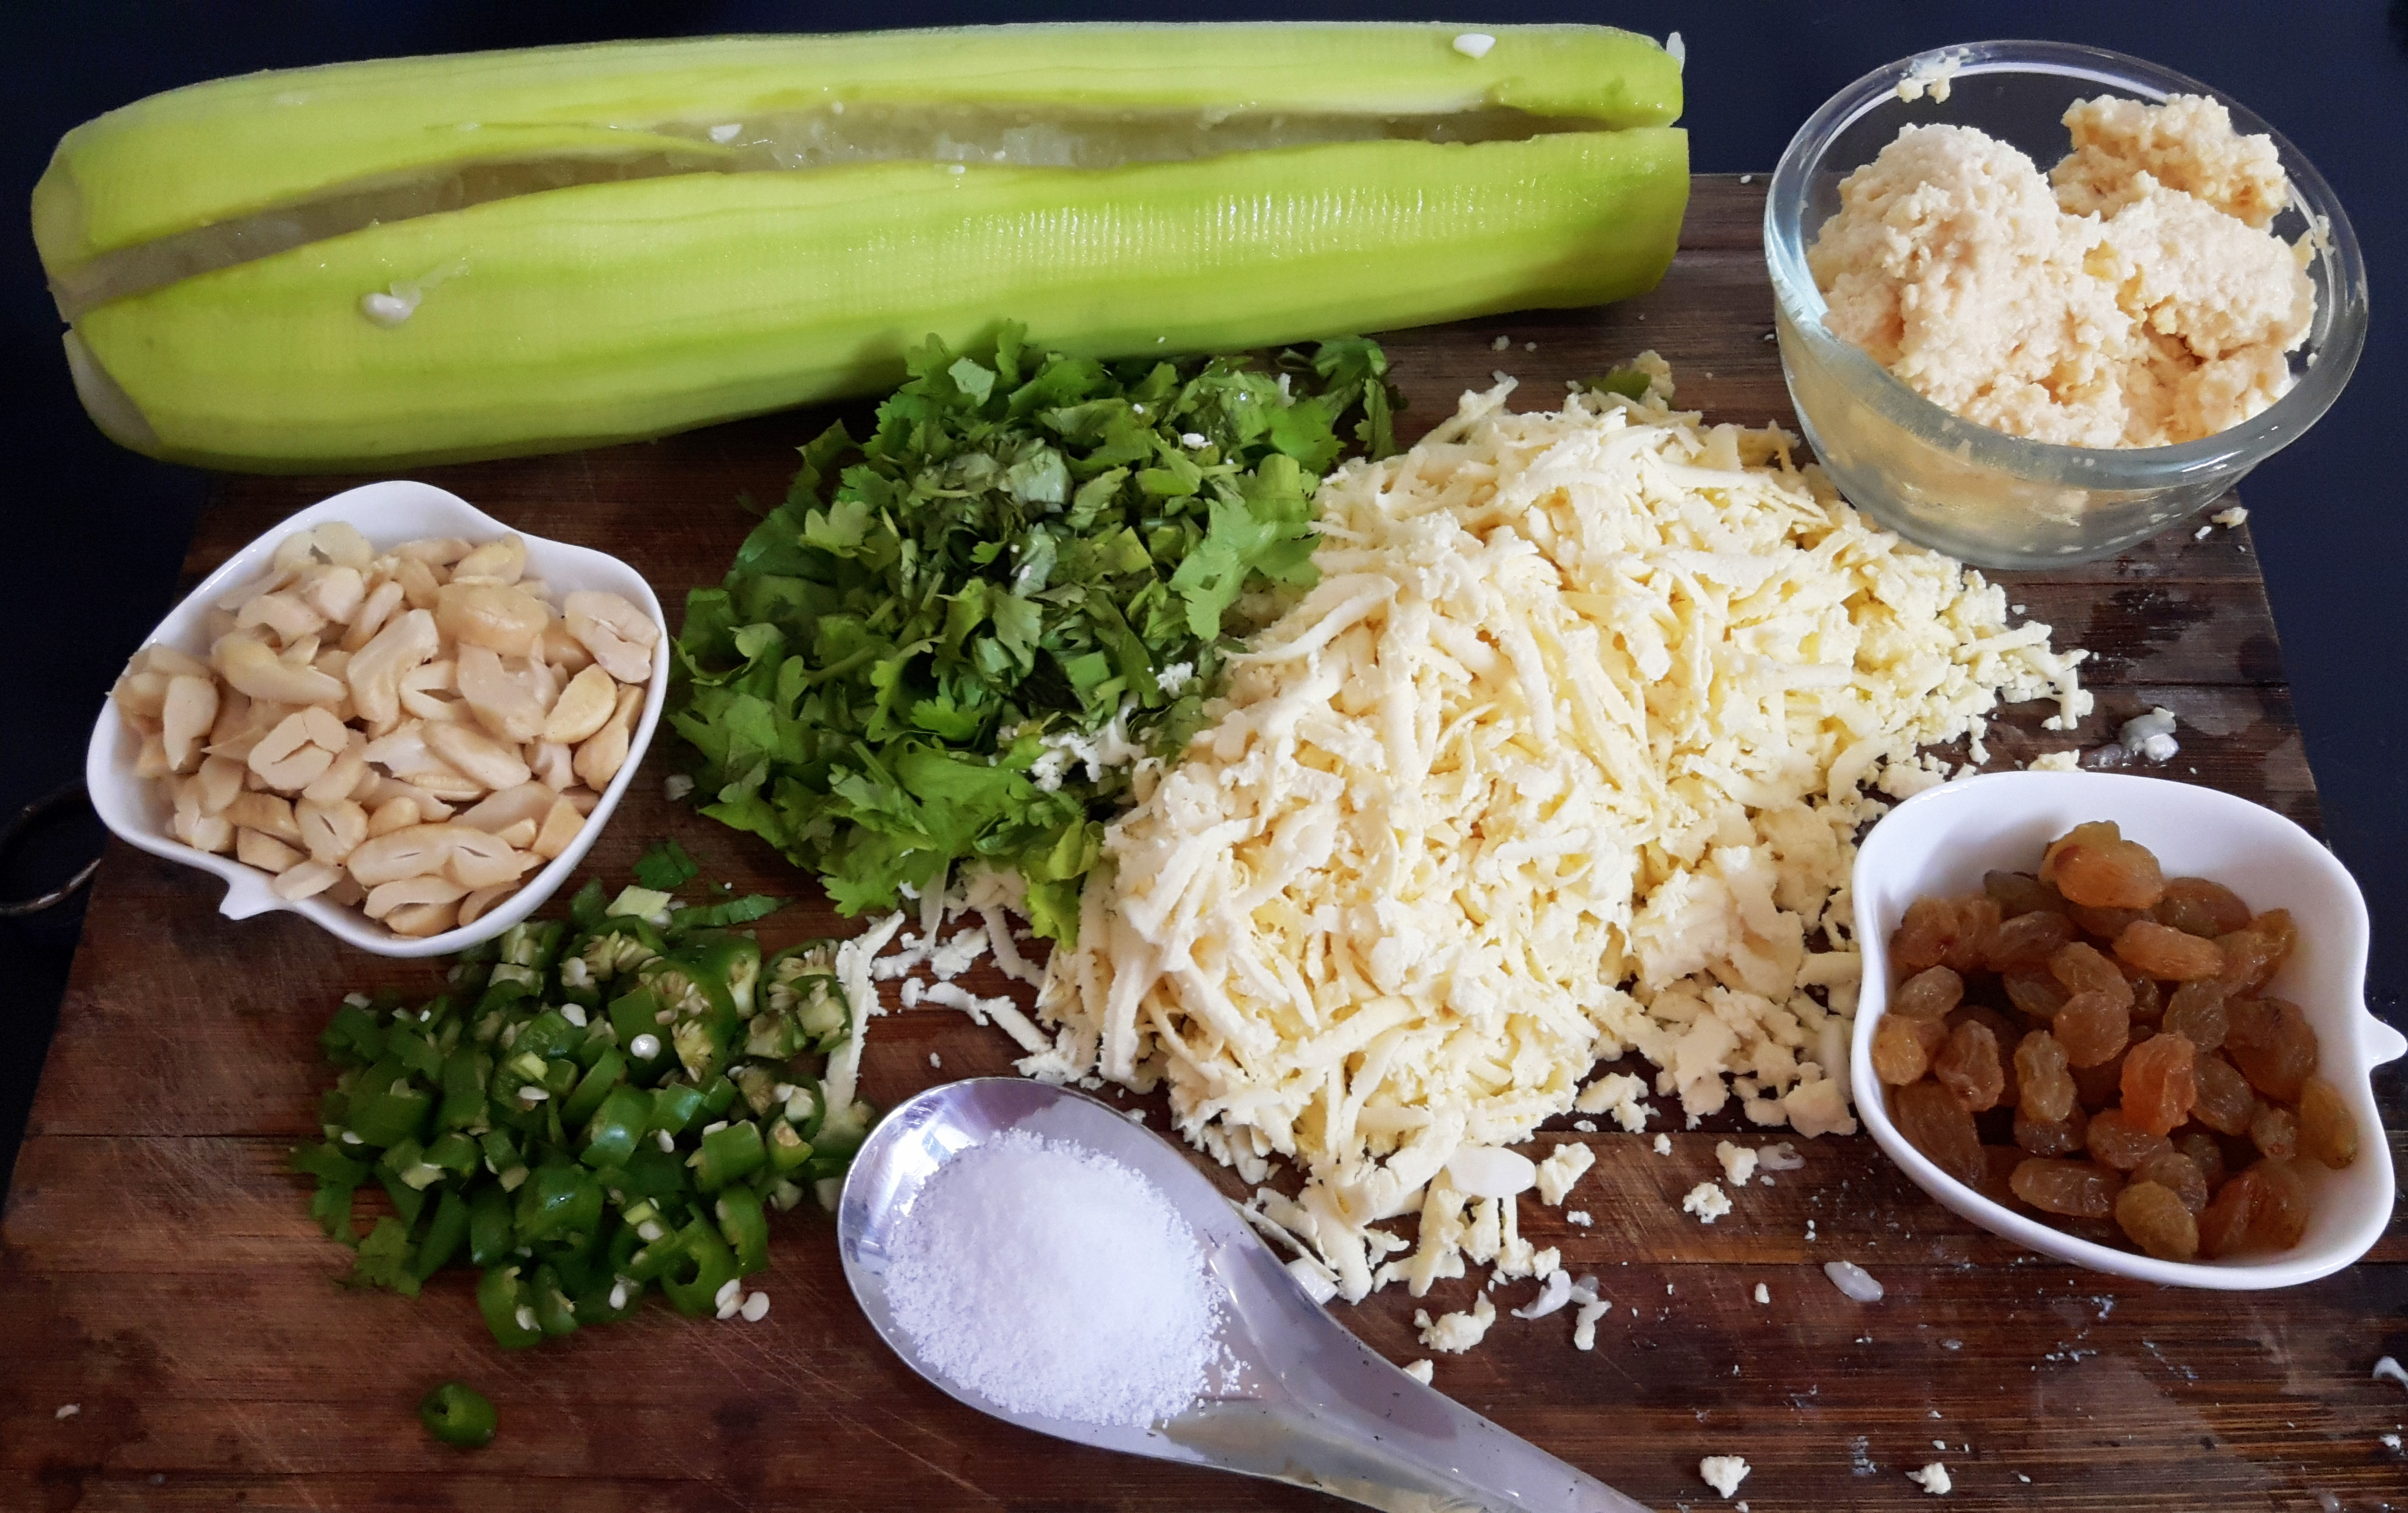 prepared stuffing ingredients